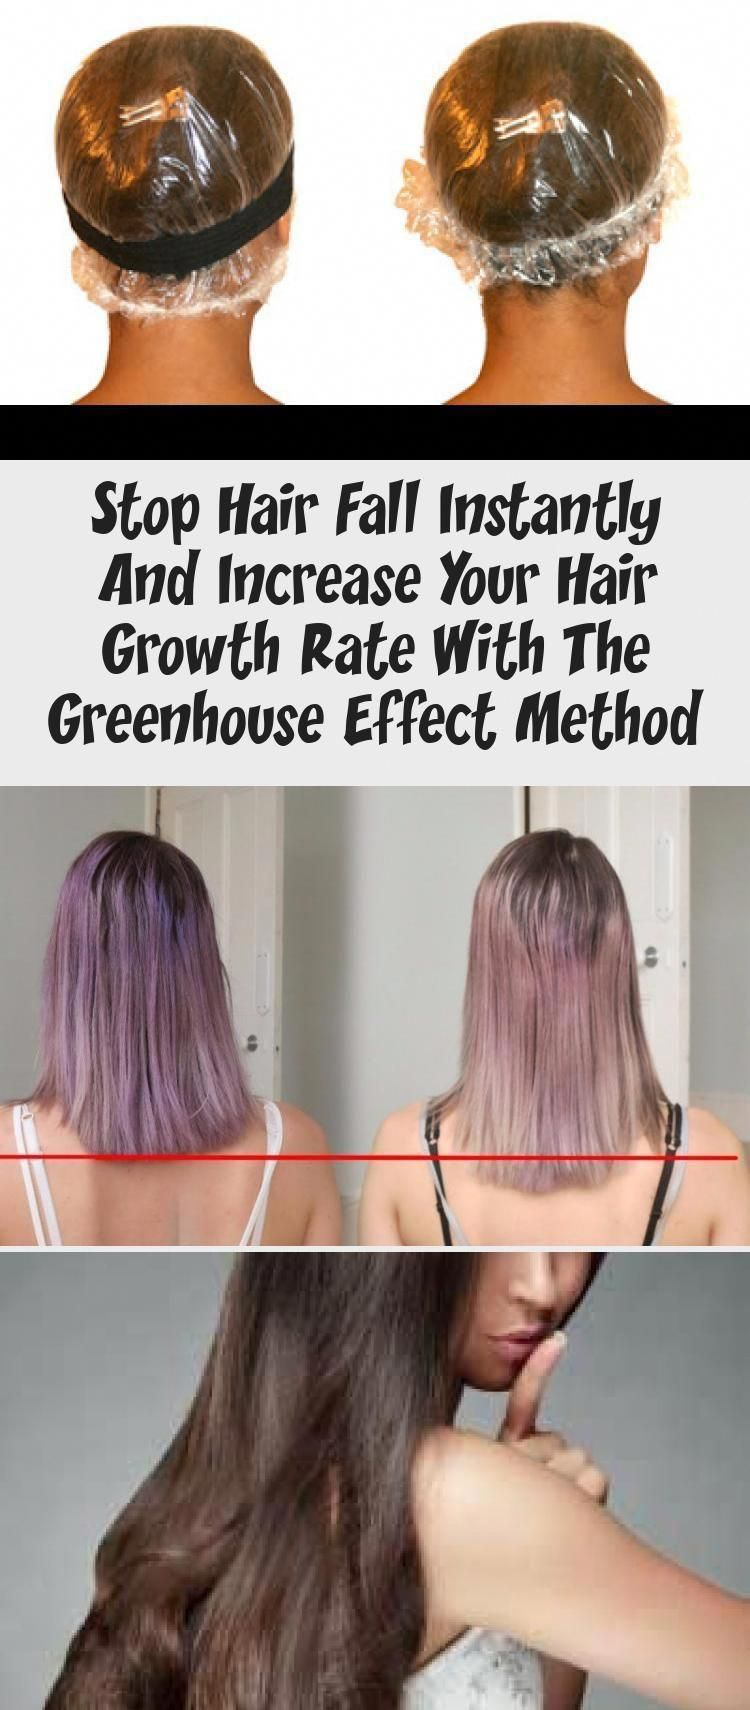 Stop Hair Fall Instantly And Increase Your Hair Growth Rate With The Greenhouse Effect Method#effect #fall #greenhouse #growth #hair #increase #instantly #method #rate #stop #hairgrowthfaster